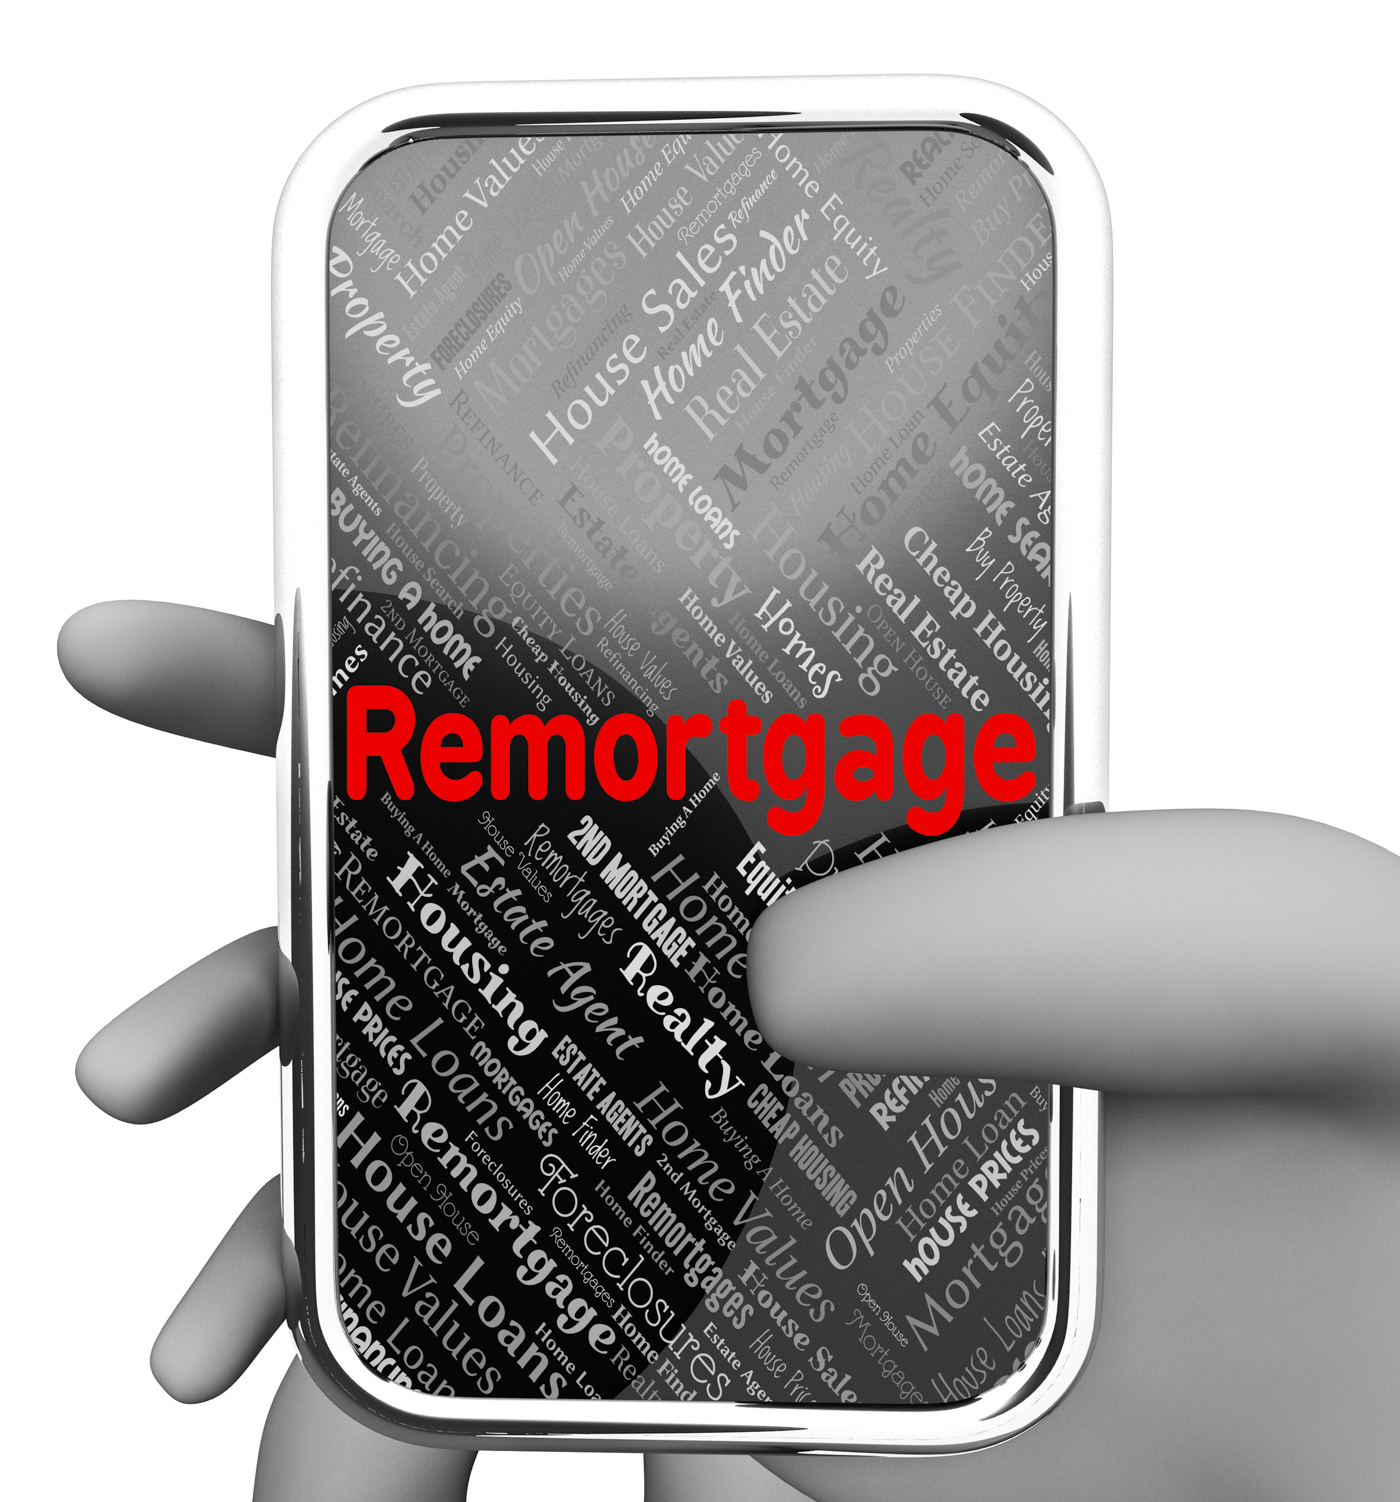 Remortgage online indicates real estate and borrowing photo